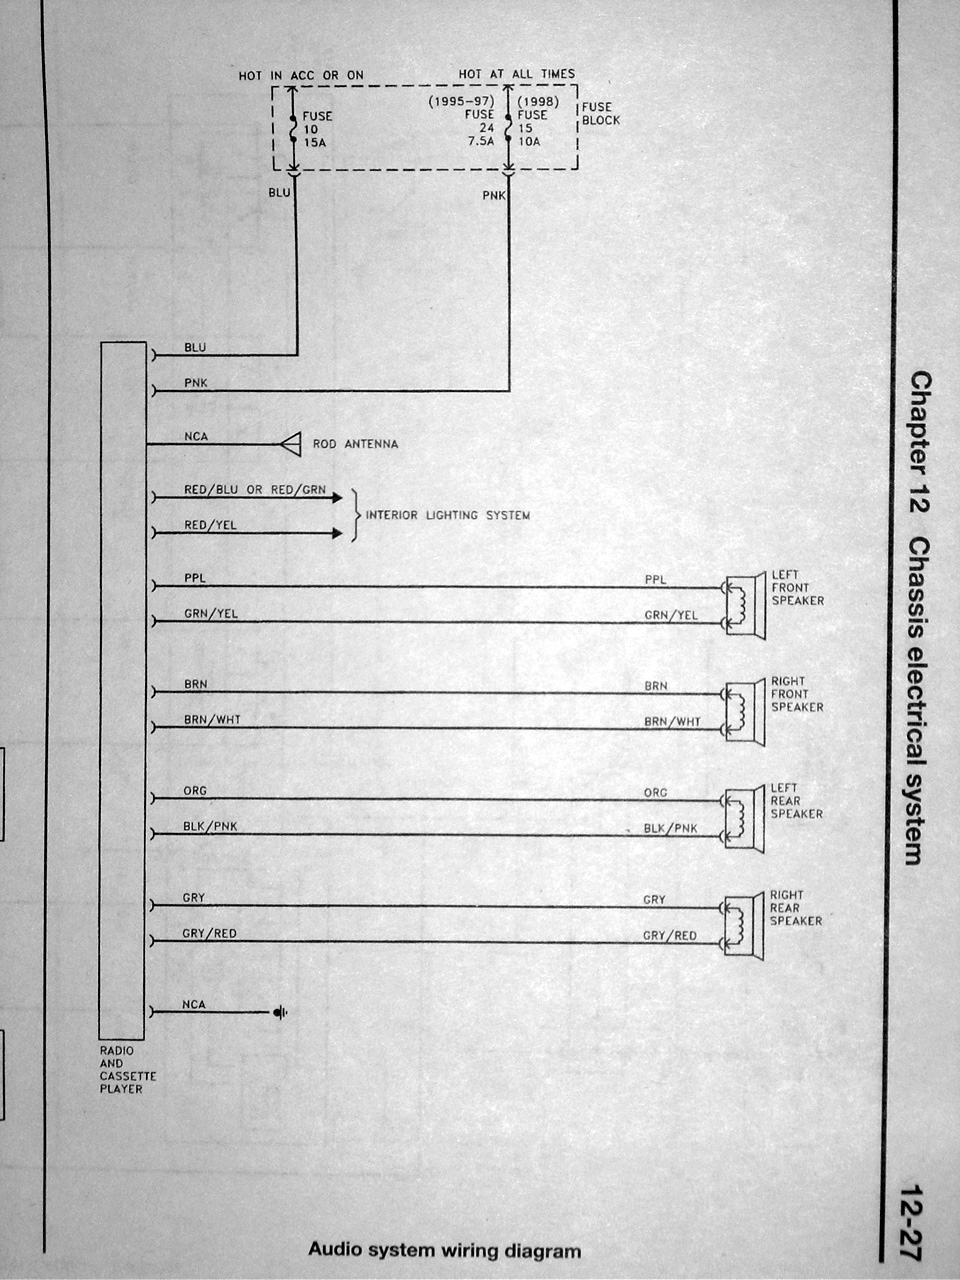 DSC01849 wiring diagram thread *useful info* nissan forum 2003 nissan 350z headlight wiring diagram at reclaimingppi.co